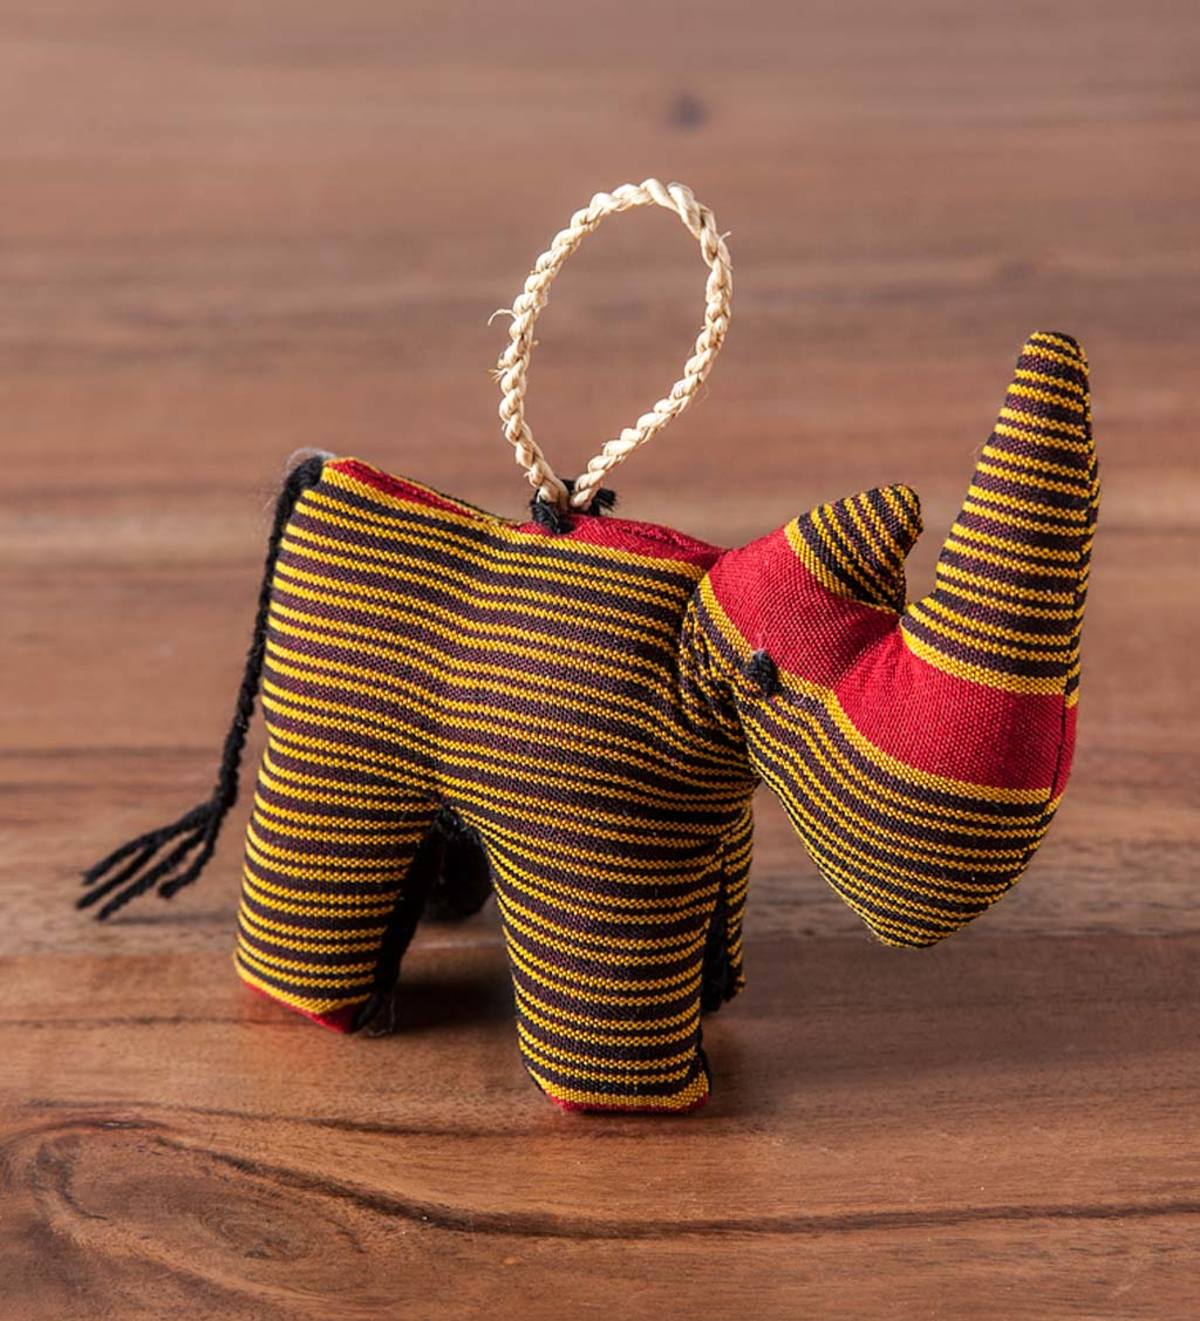 Kikoy Fabric Rhino Ornament  - Red